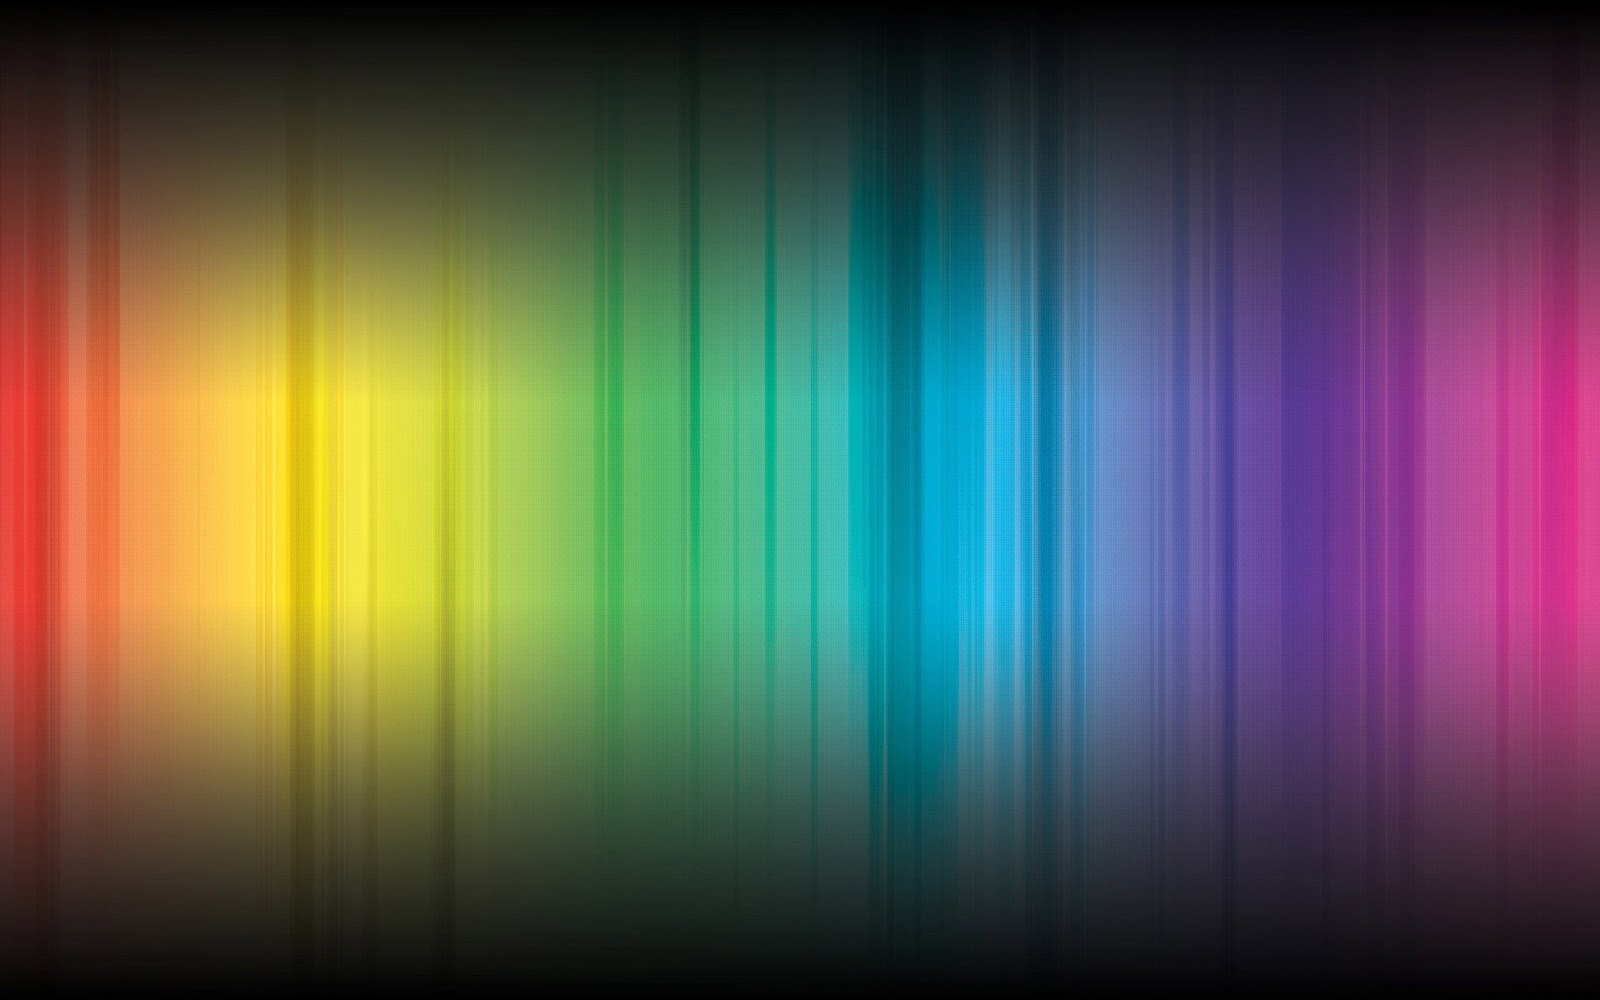 colour spectrum abstract background - photo #7